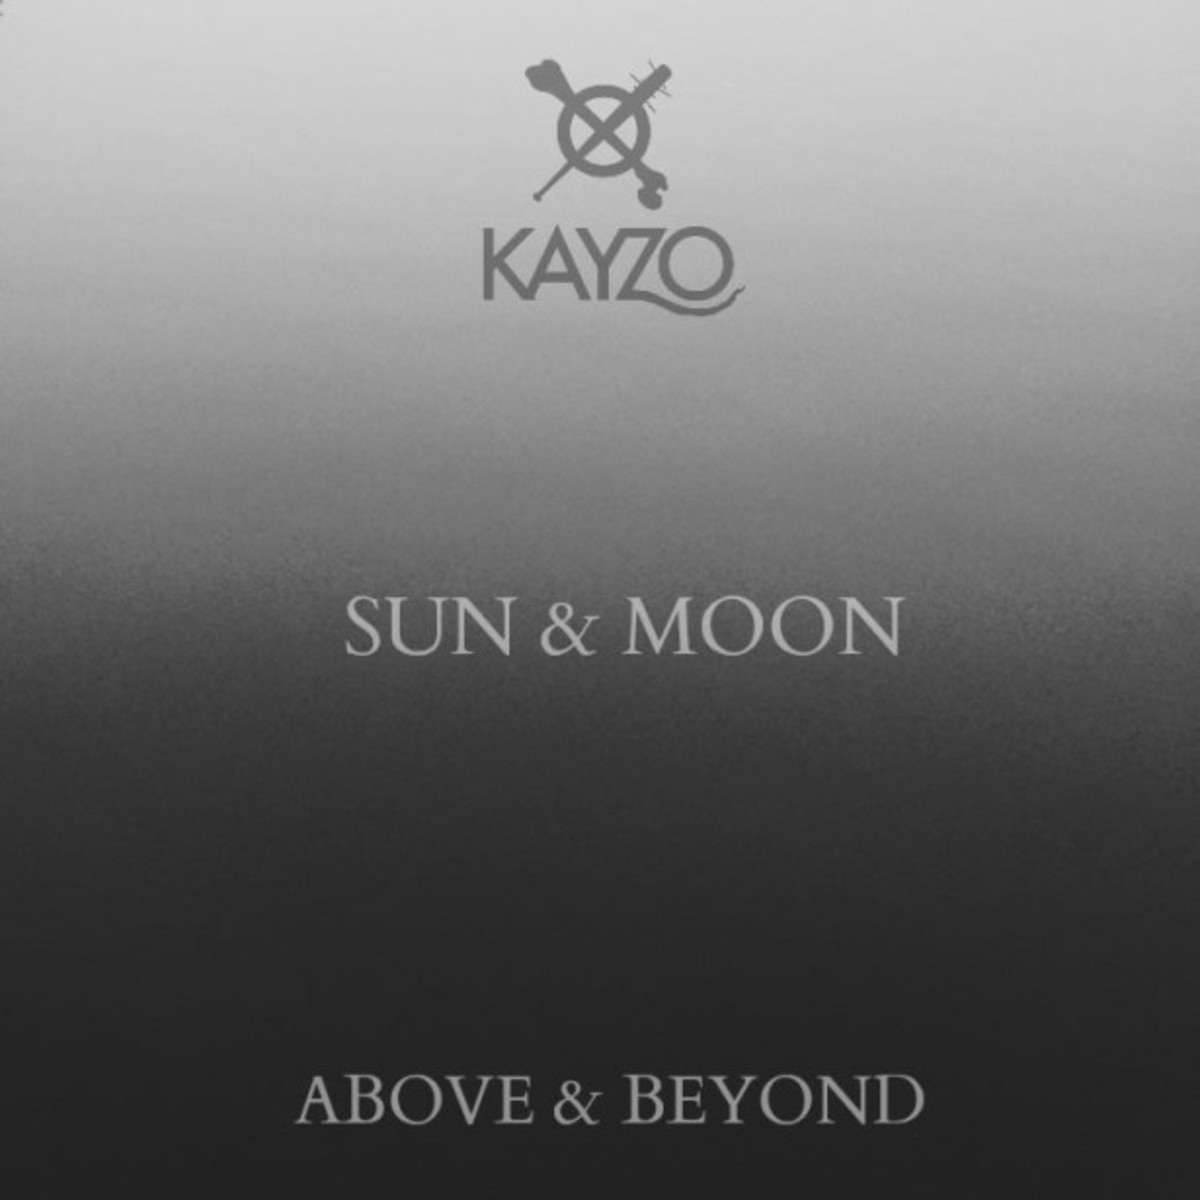 Above & Beyond Kayzo Remix Will Be 'Scaring U' - Free Download